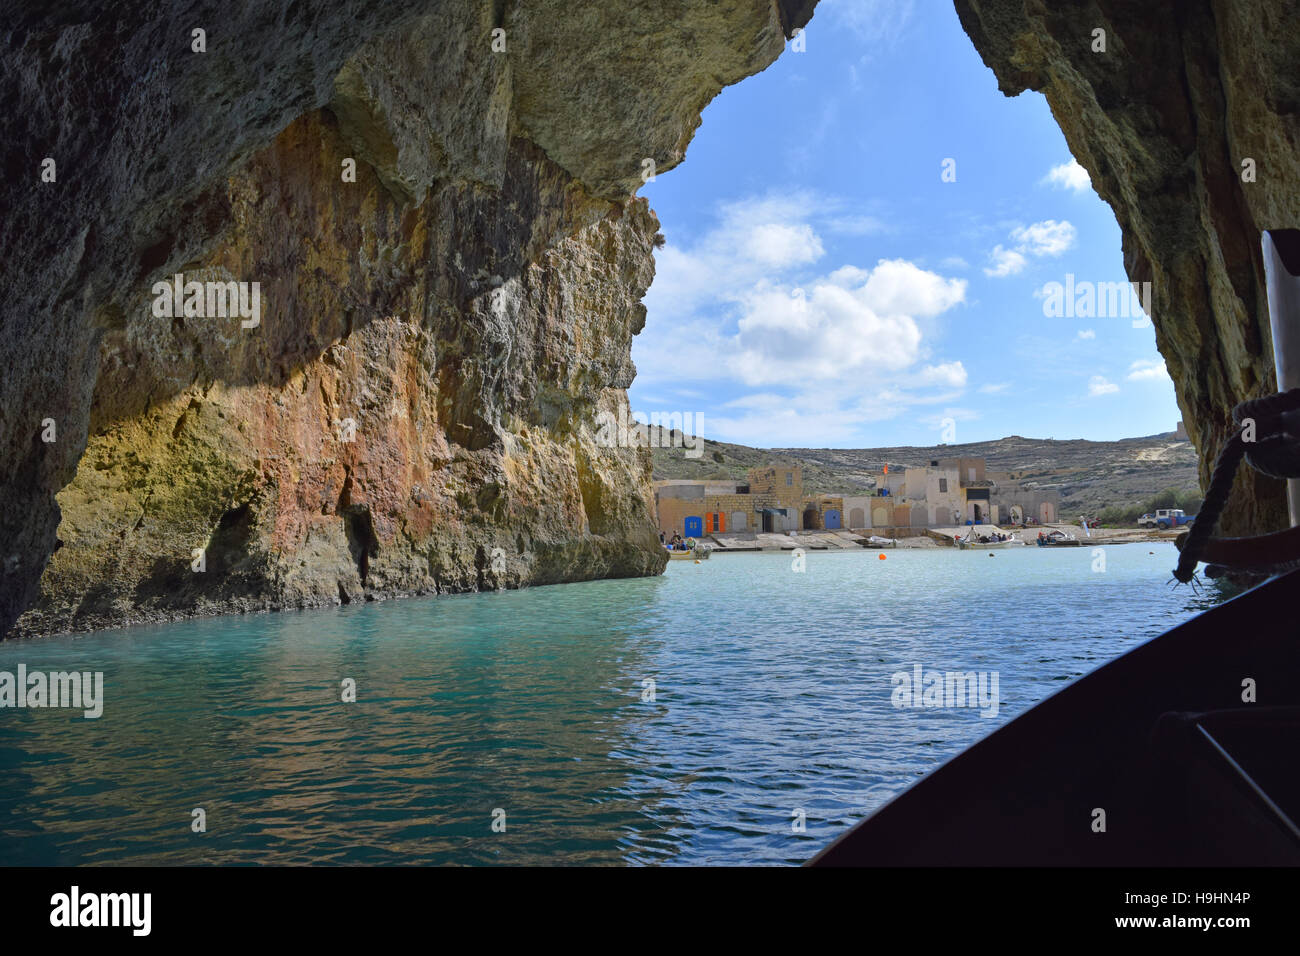 Eastern end of the natural tunnel leading from the inland lake to the Mediterranean sea at Dwejra, Gozo - Stock Image